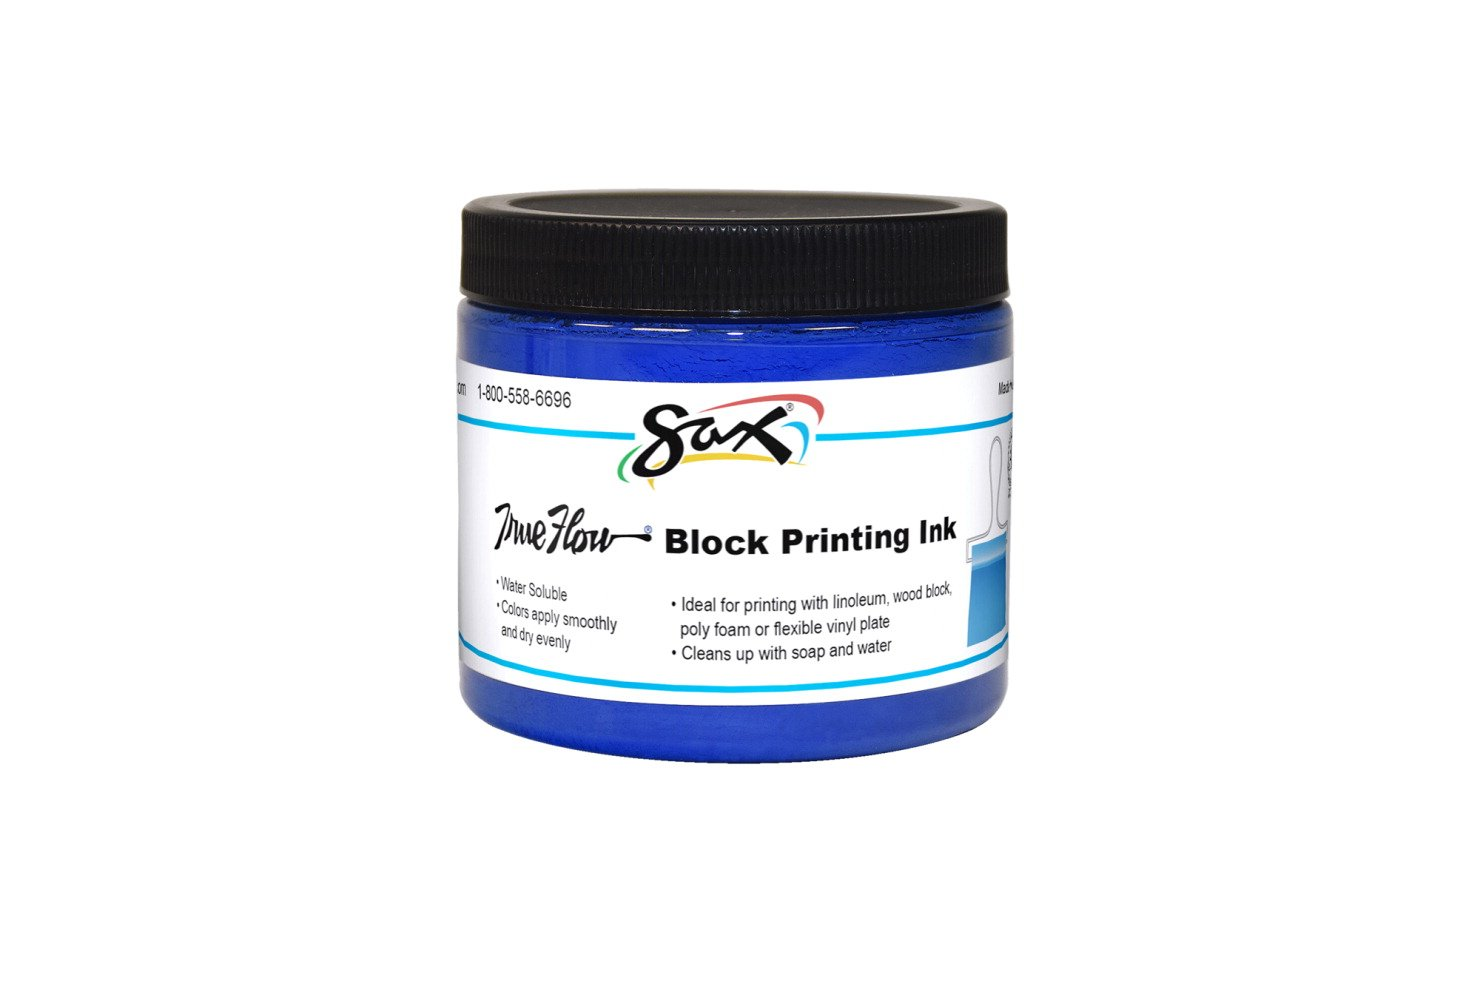 Sax True Flow Water Soluble Block Printing Ink - 16 Ounces - Blue